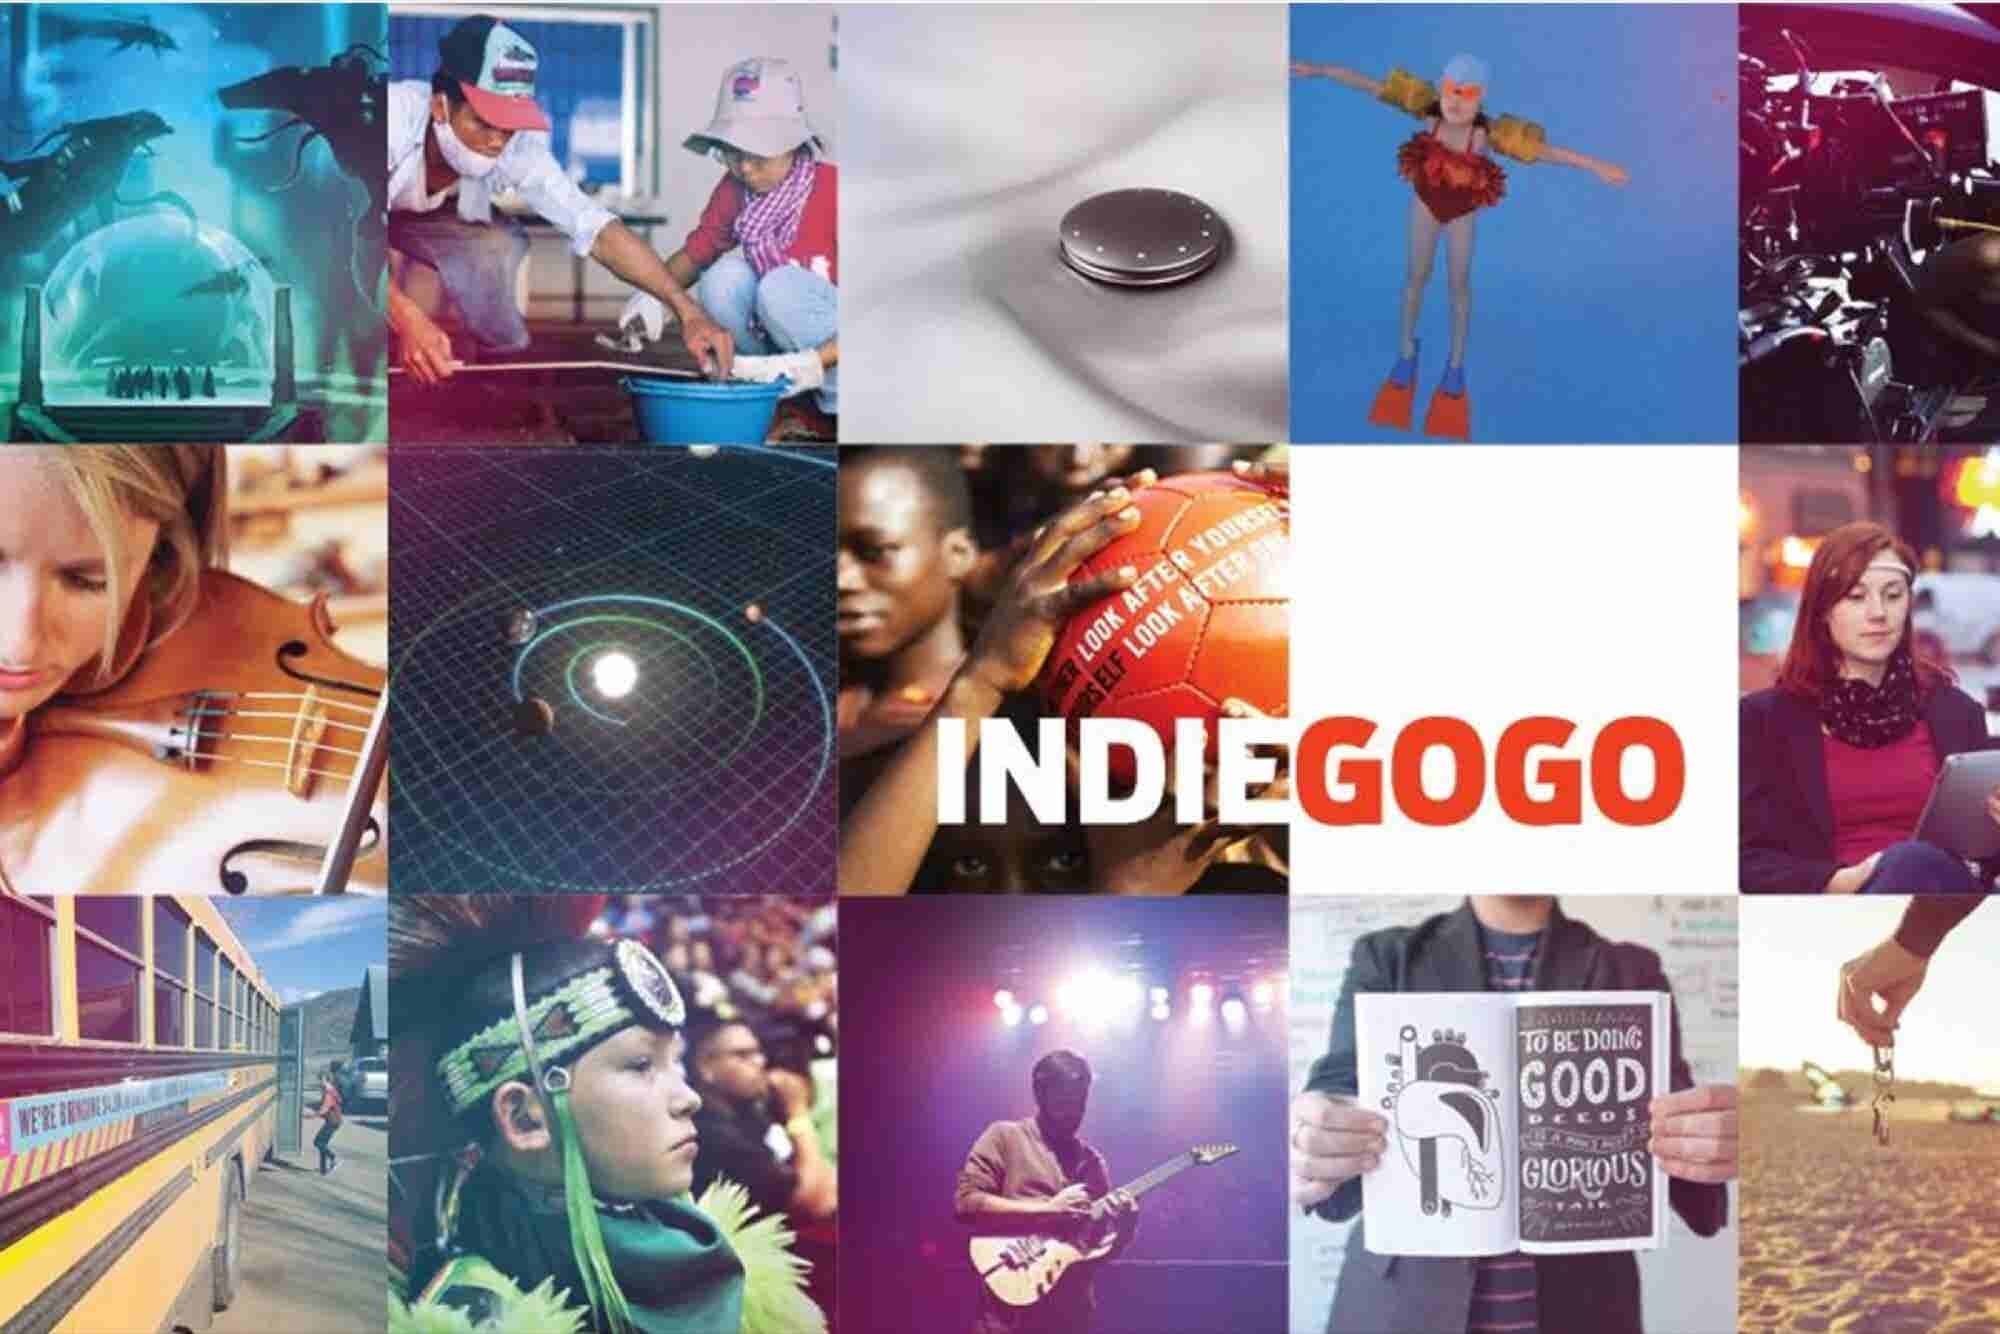 Indiegogo Launches a New Product to Court Big Businesses